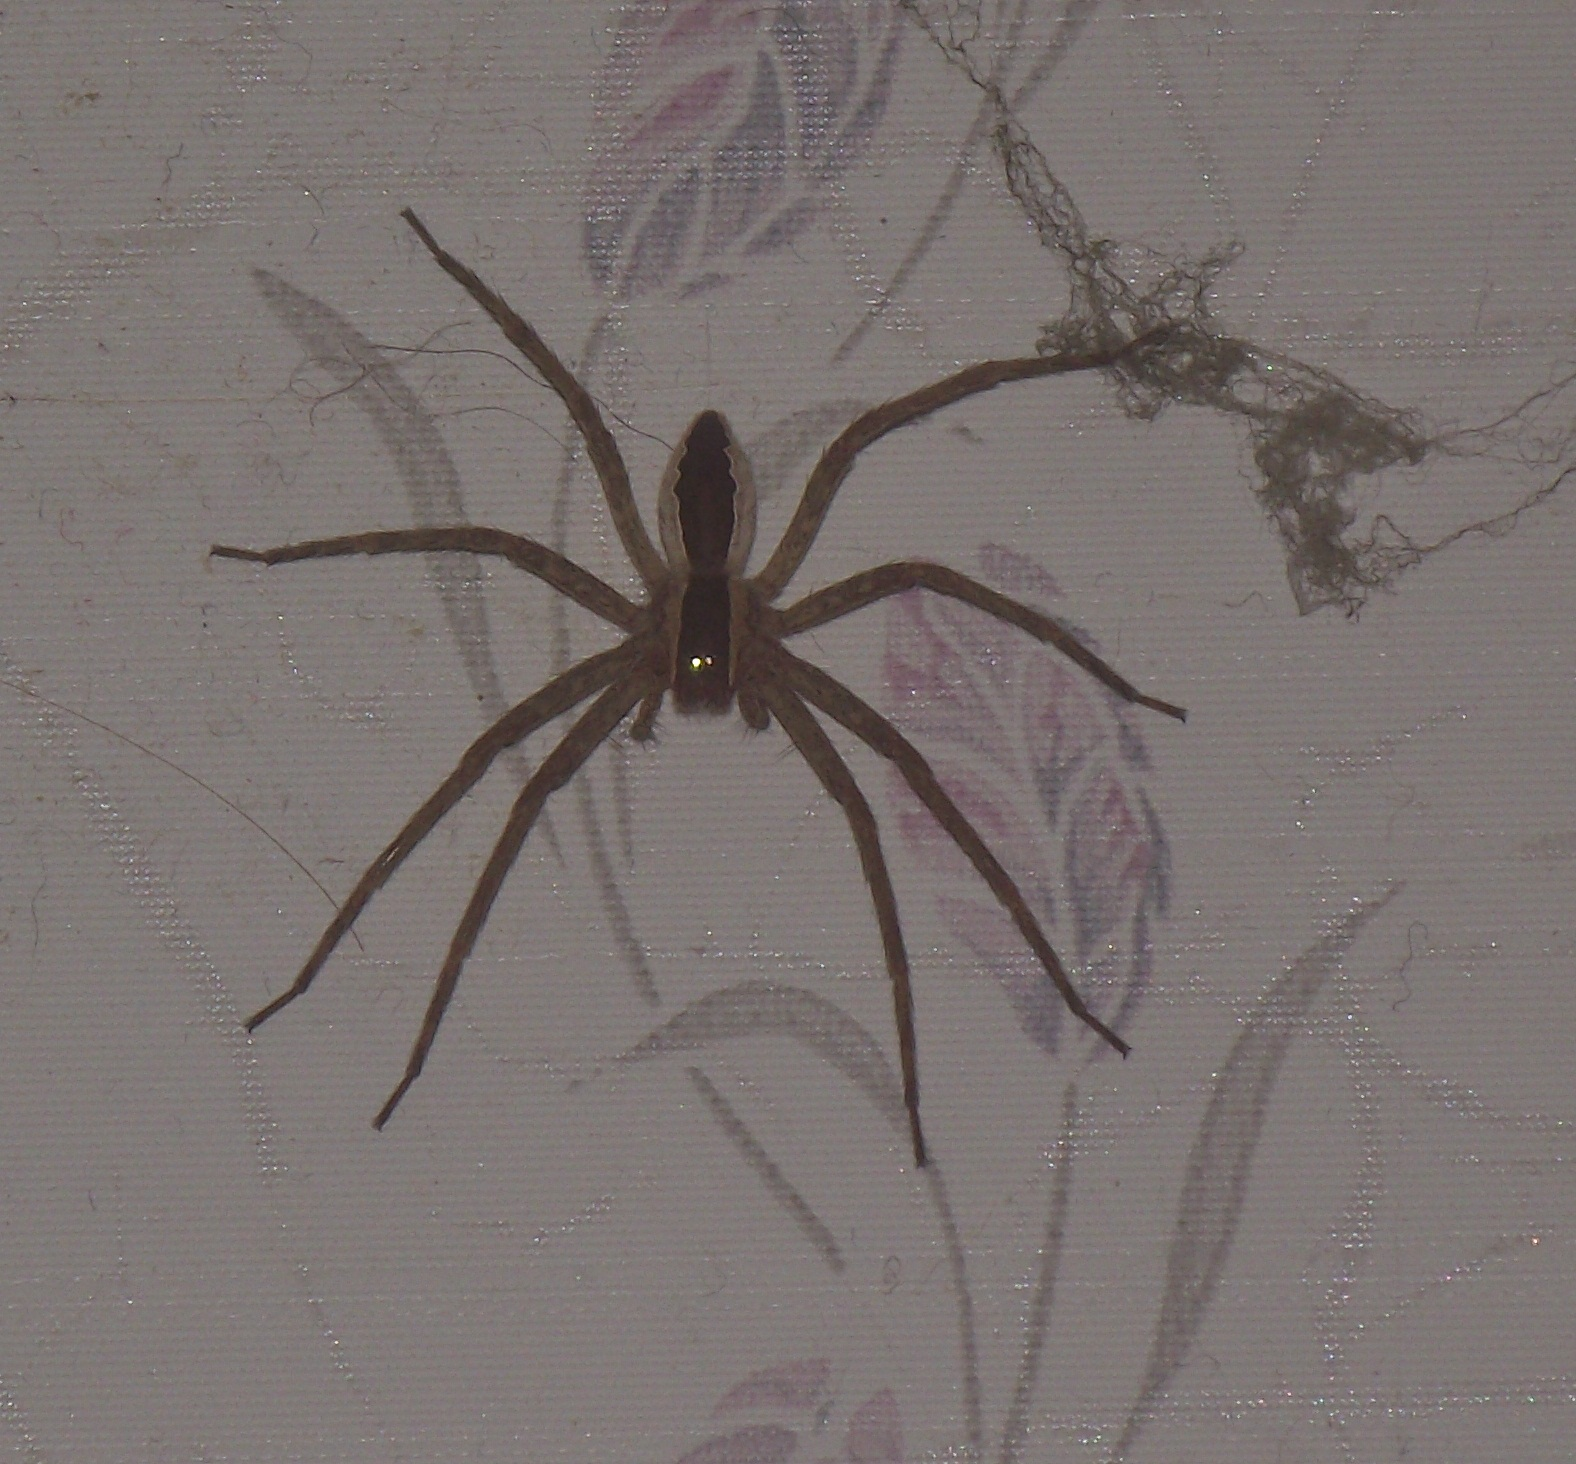 Submitted pics nursery web spiders michigan spiders for Fishing spider michigan